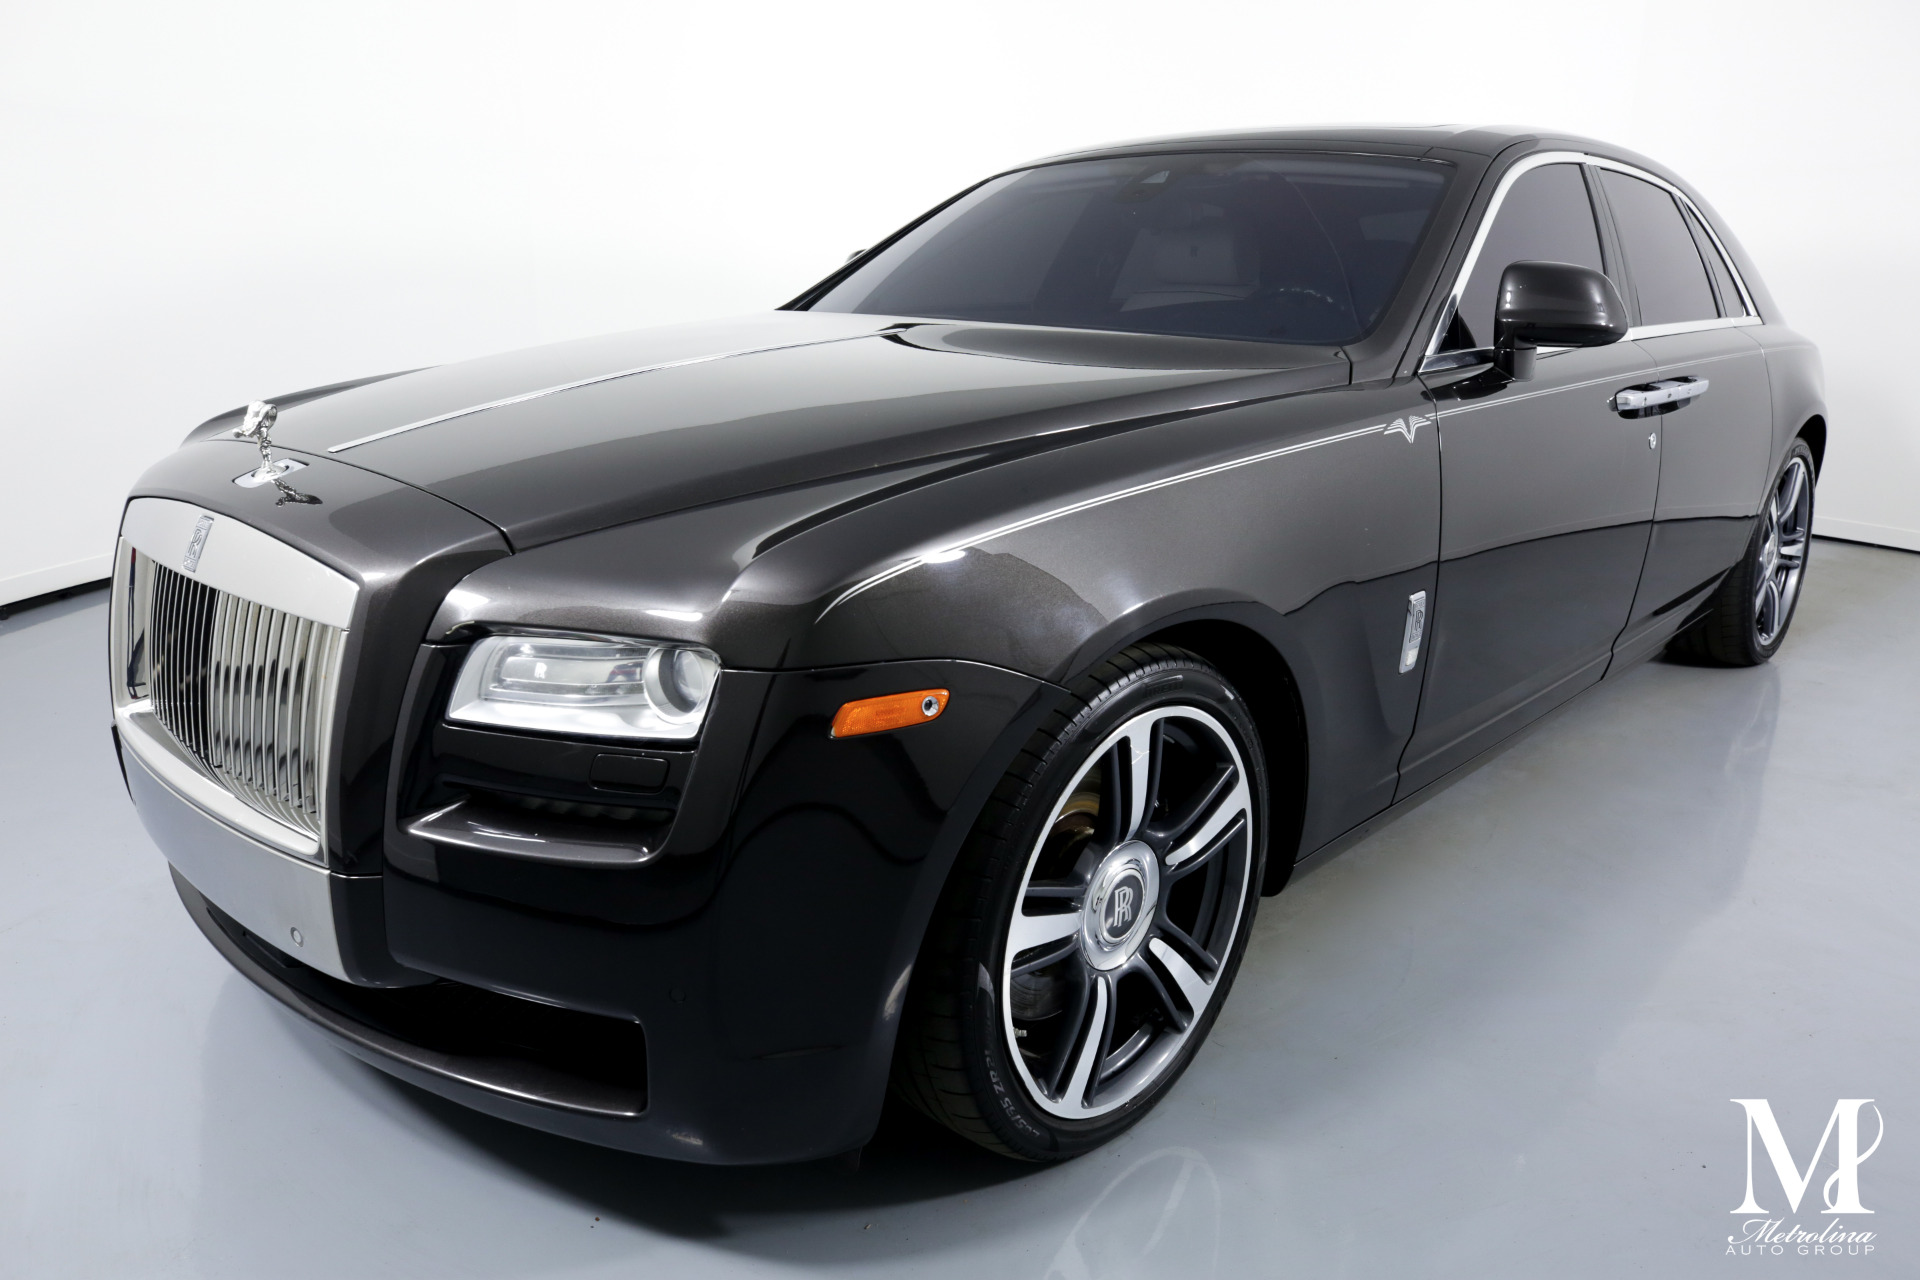 Used 2014 Rolls-Royce Ghost for sale $114,996 at Metrolina Auto Group in Charlotte NC 28217 - 4